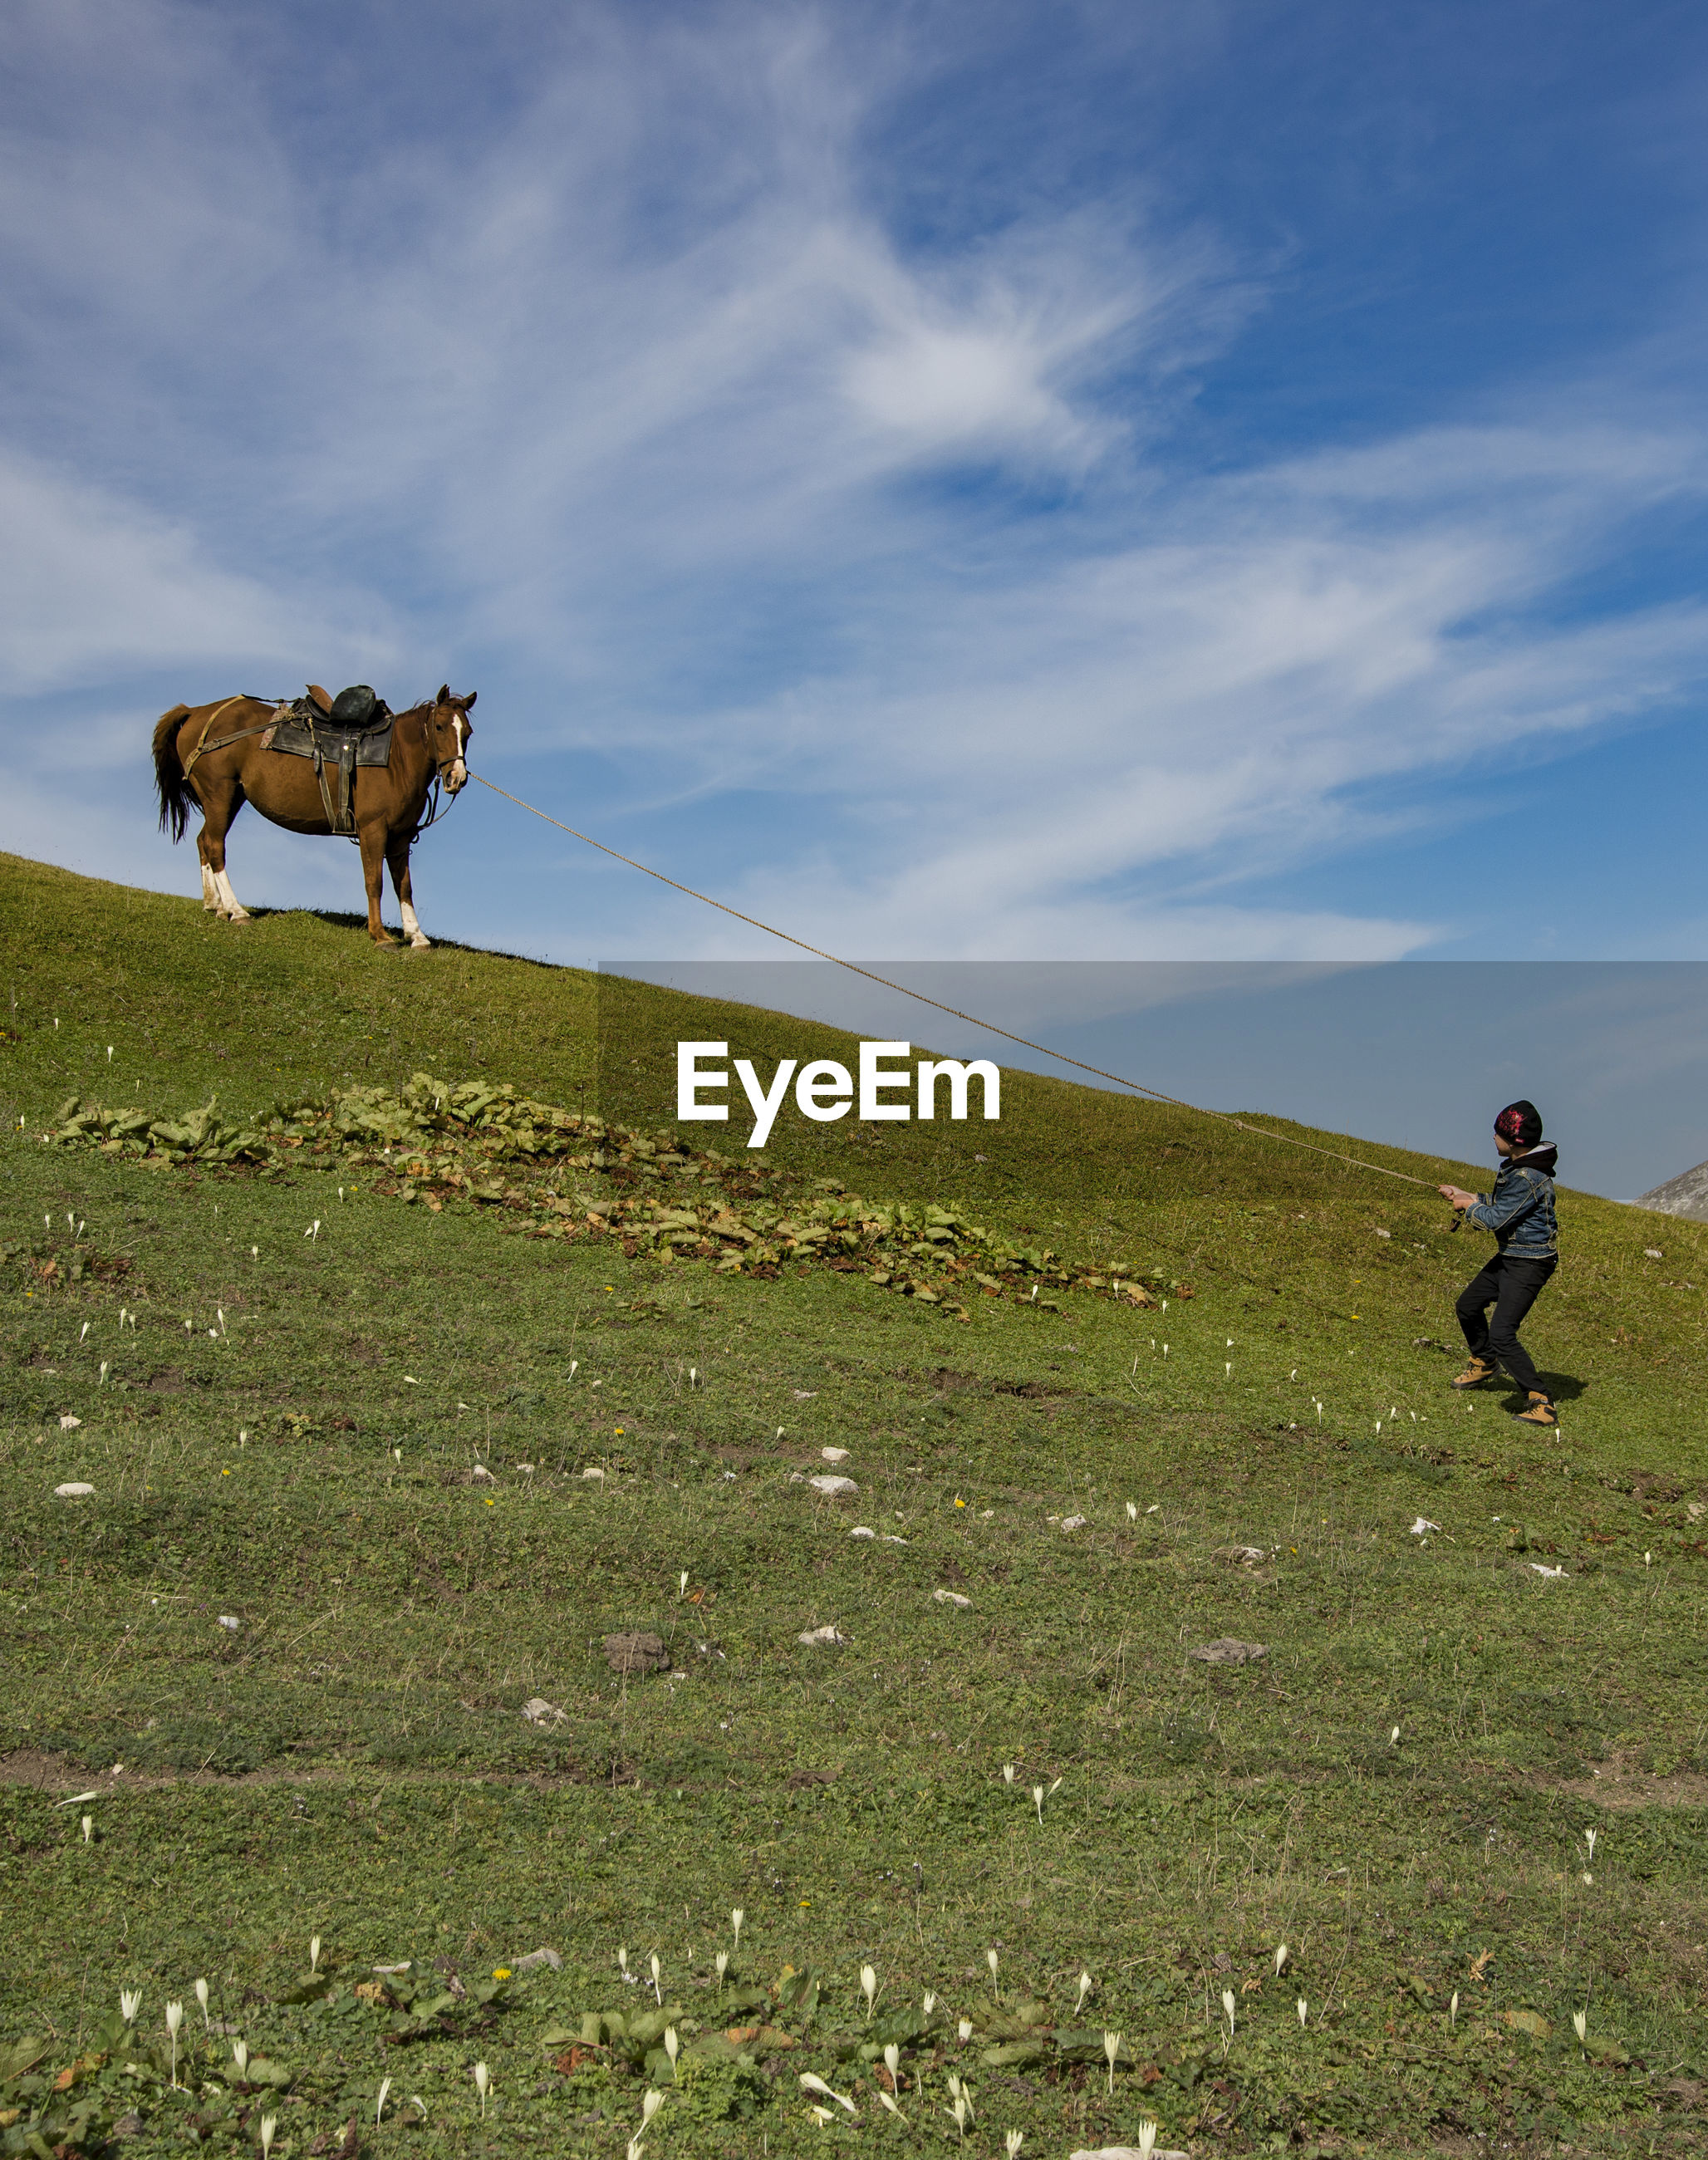 MAN AND HORSE ON FIELD BY LAND